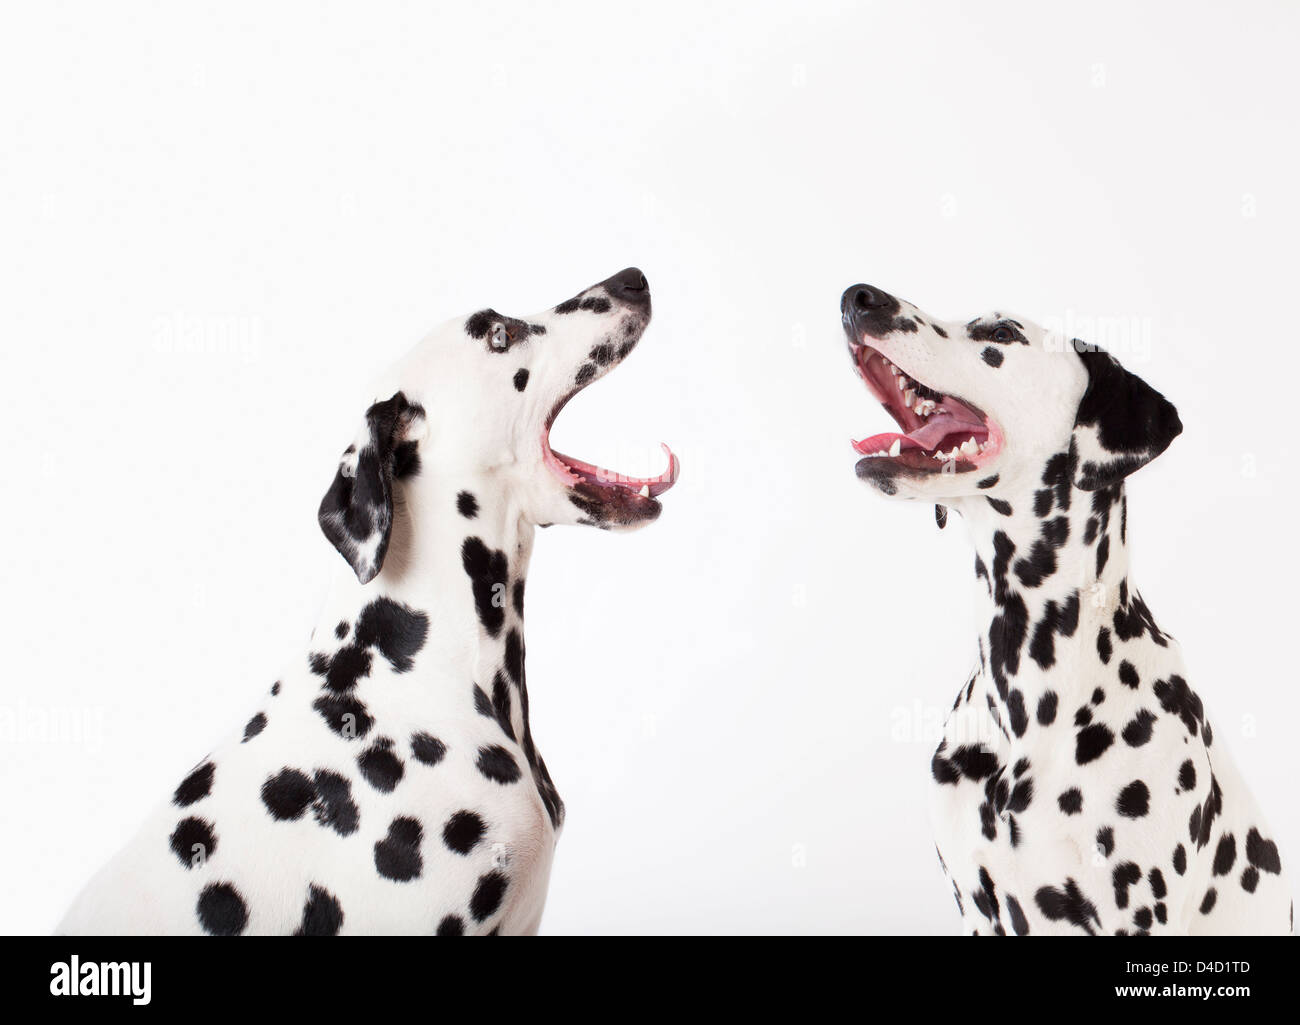 Dogs howling at each other - Stock Image